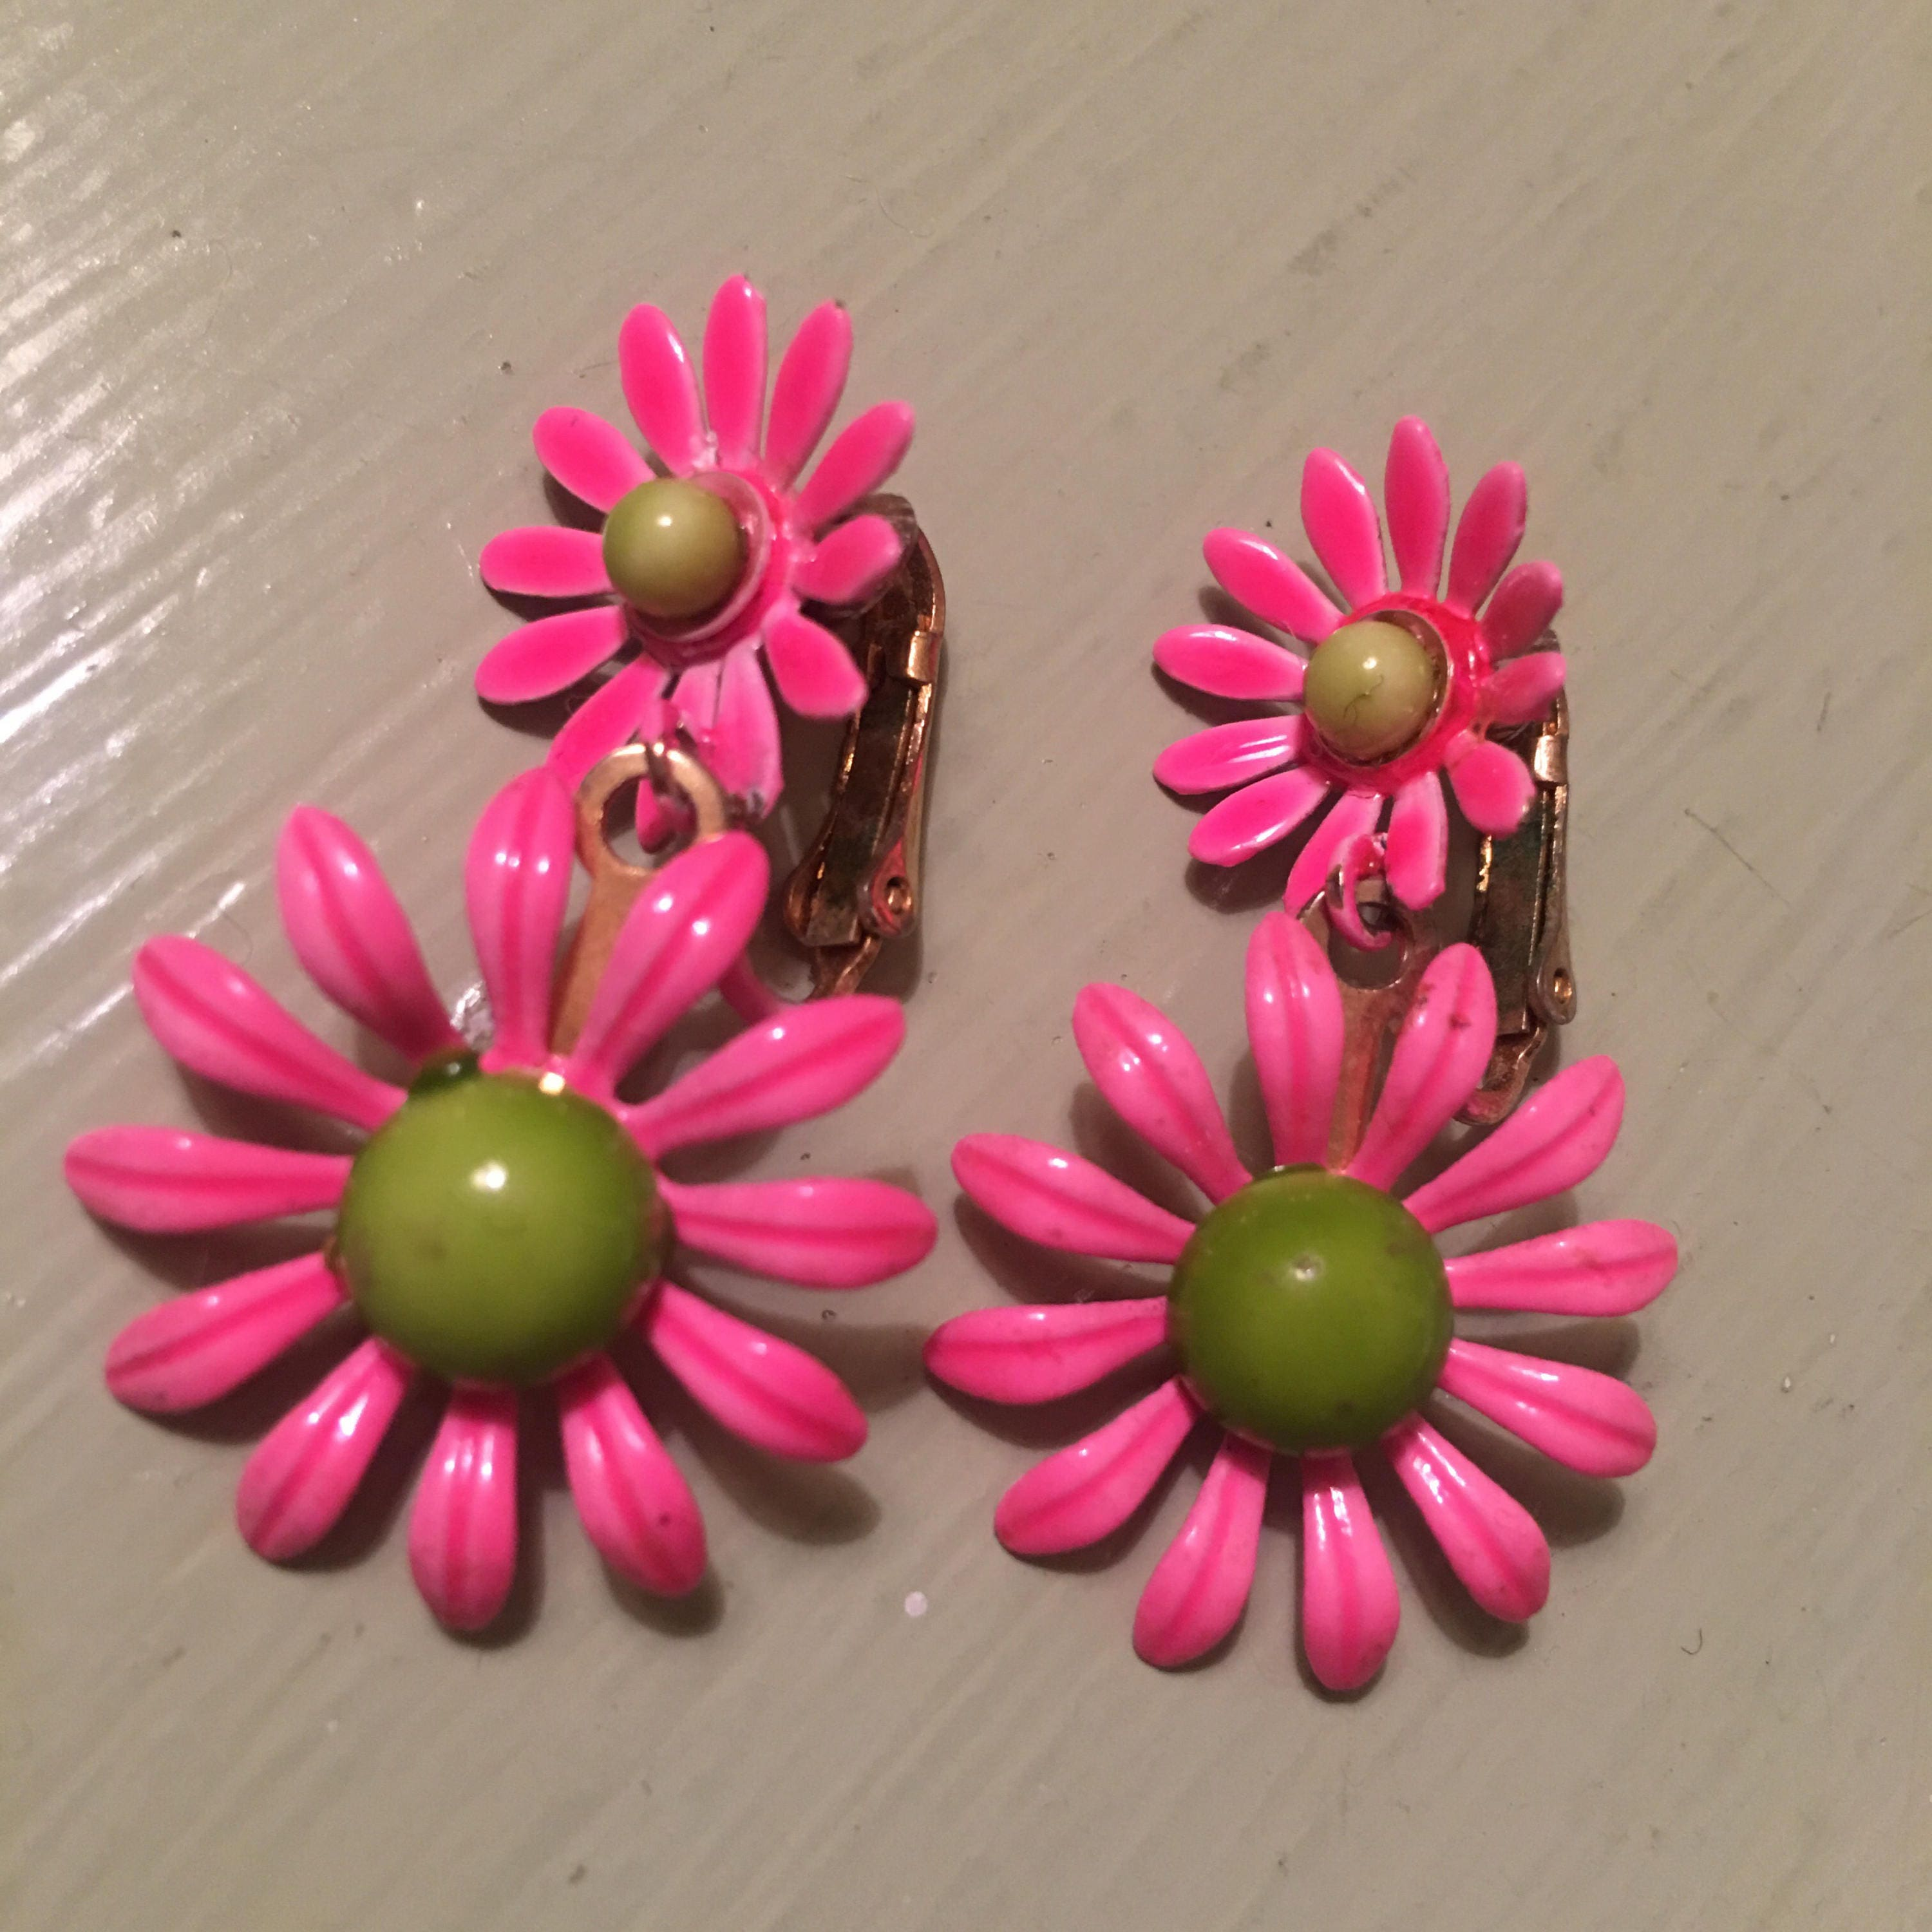 1960s Flower Power Fluorescent Pink Yellowy Lime Dangle Double